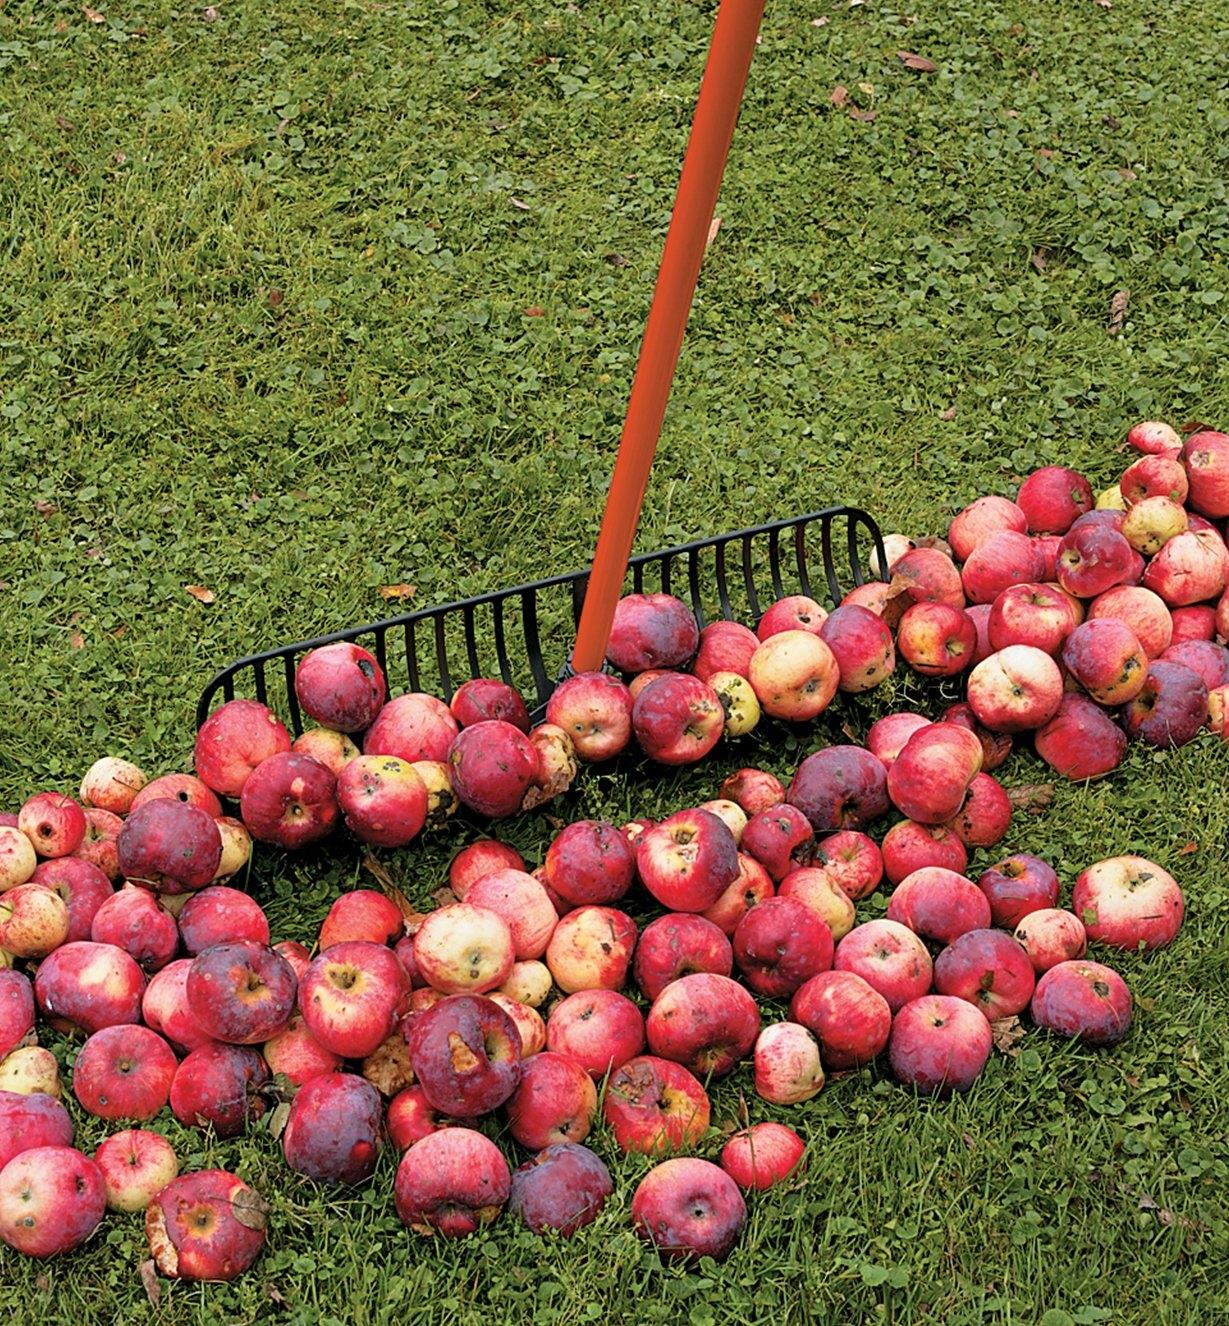 Using the Power Rake to collect fallen apples